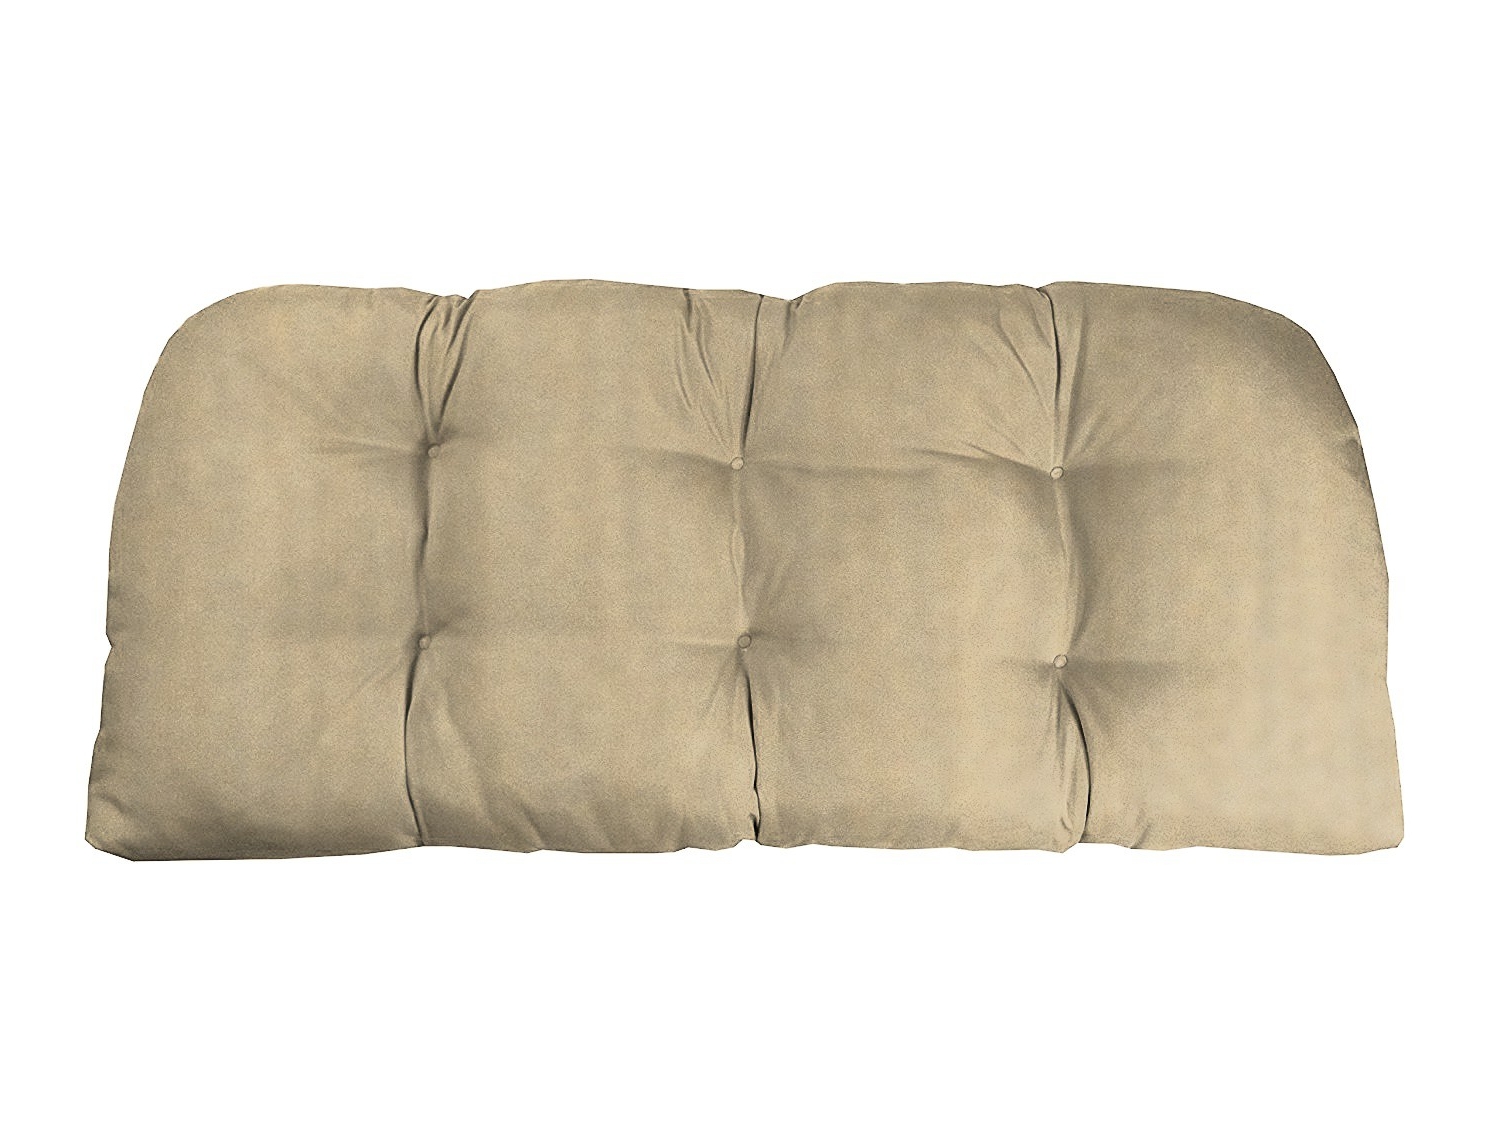 Recent Sunbrella Spectrum Sand Tufted Wicker Loveseat Cushions – 46X20X5 Intended For Loveseats With Sunbrella Cushions (Gallery 10 of 25)